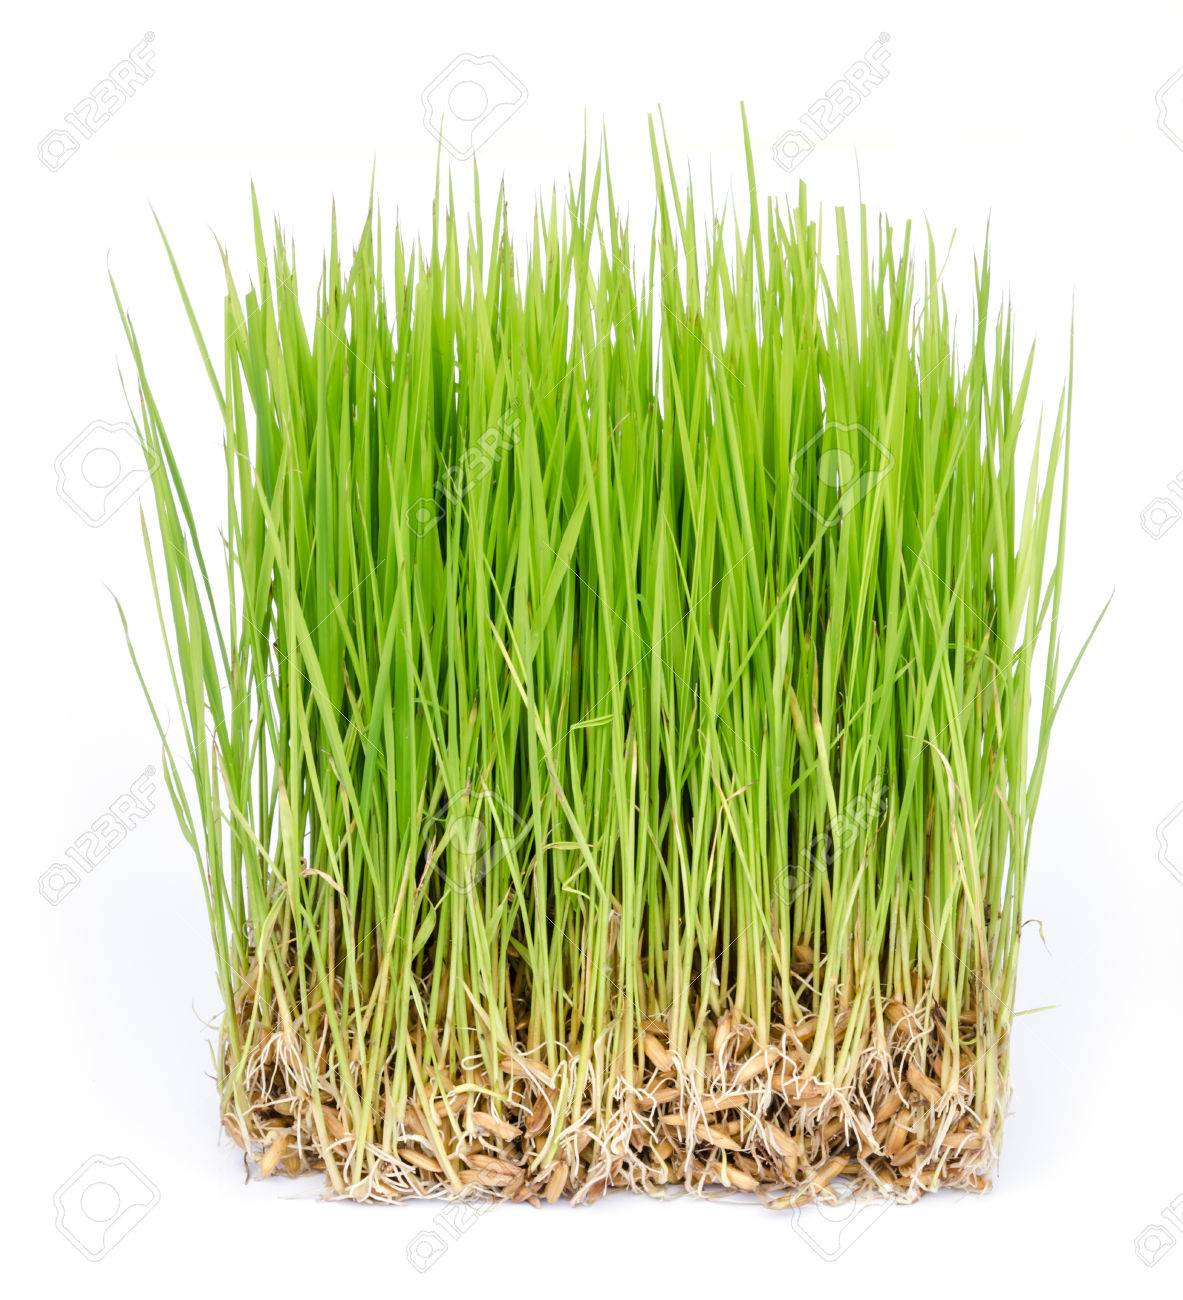 close up of rice sprouts growing from seeds. - 28027784